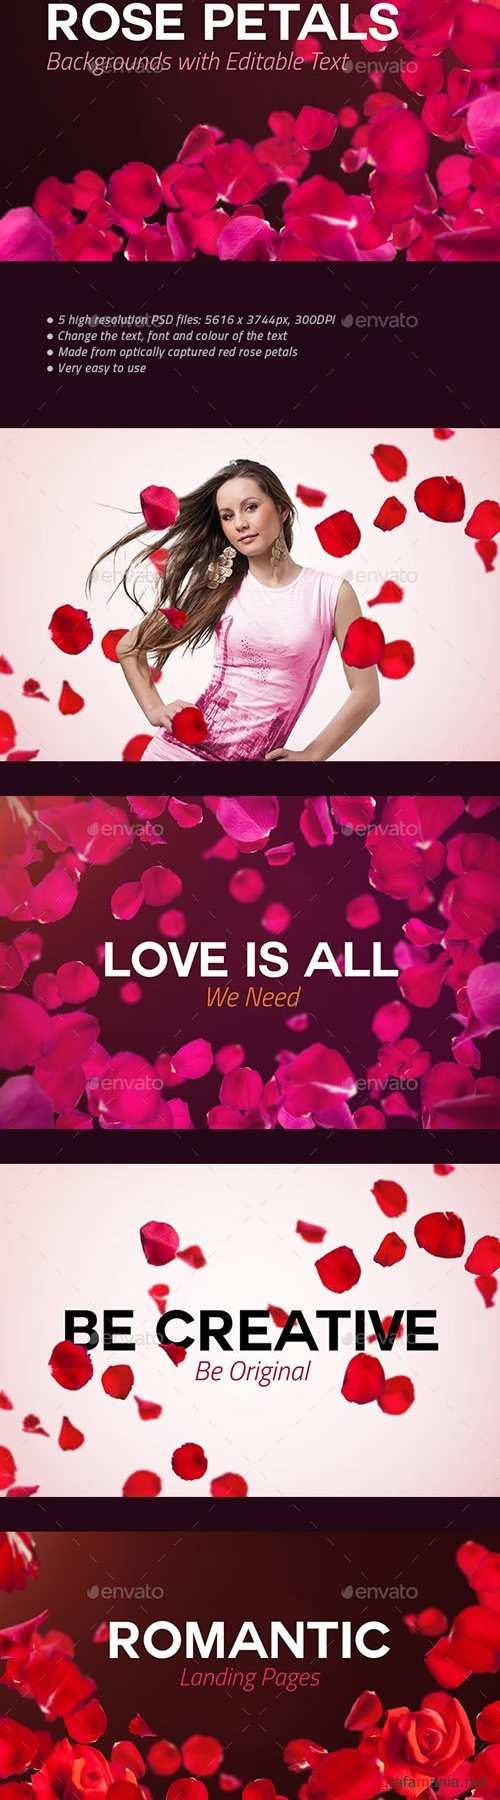 4 Rose Petals Backgrounds with Editable Text 20258778